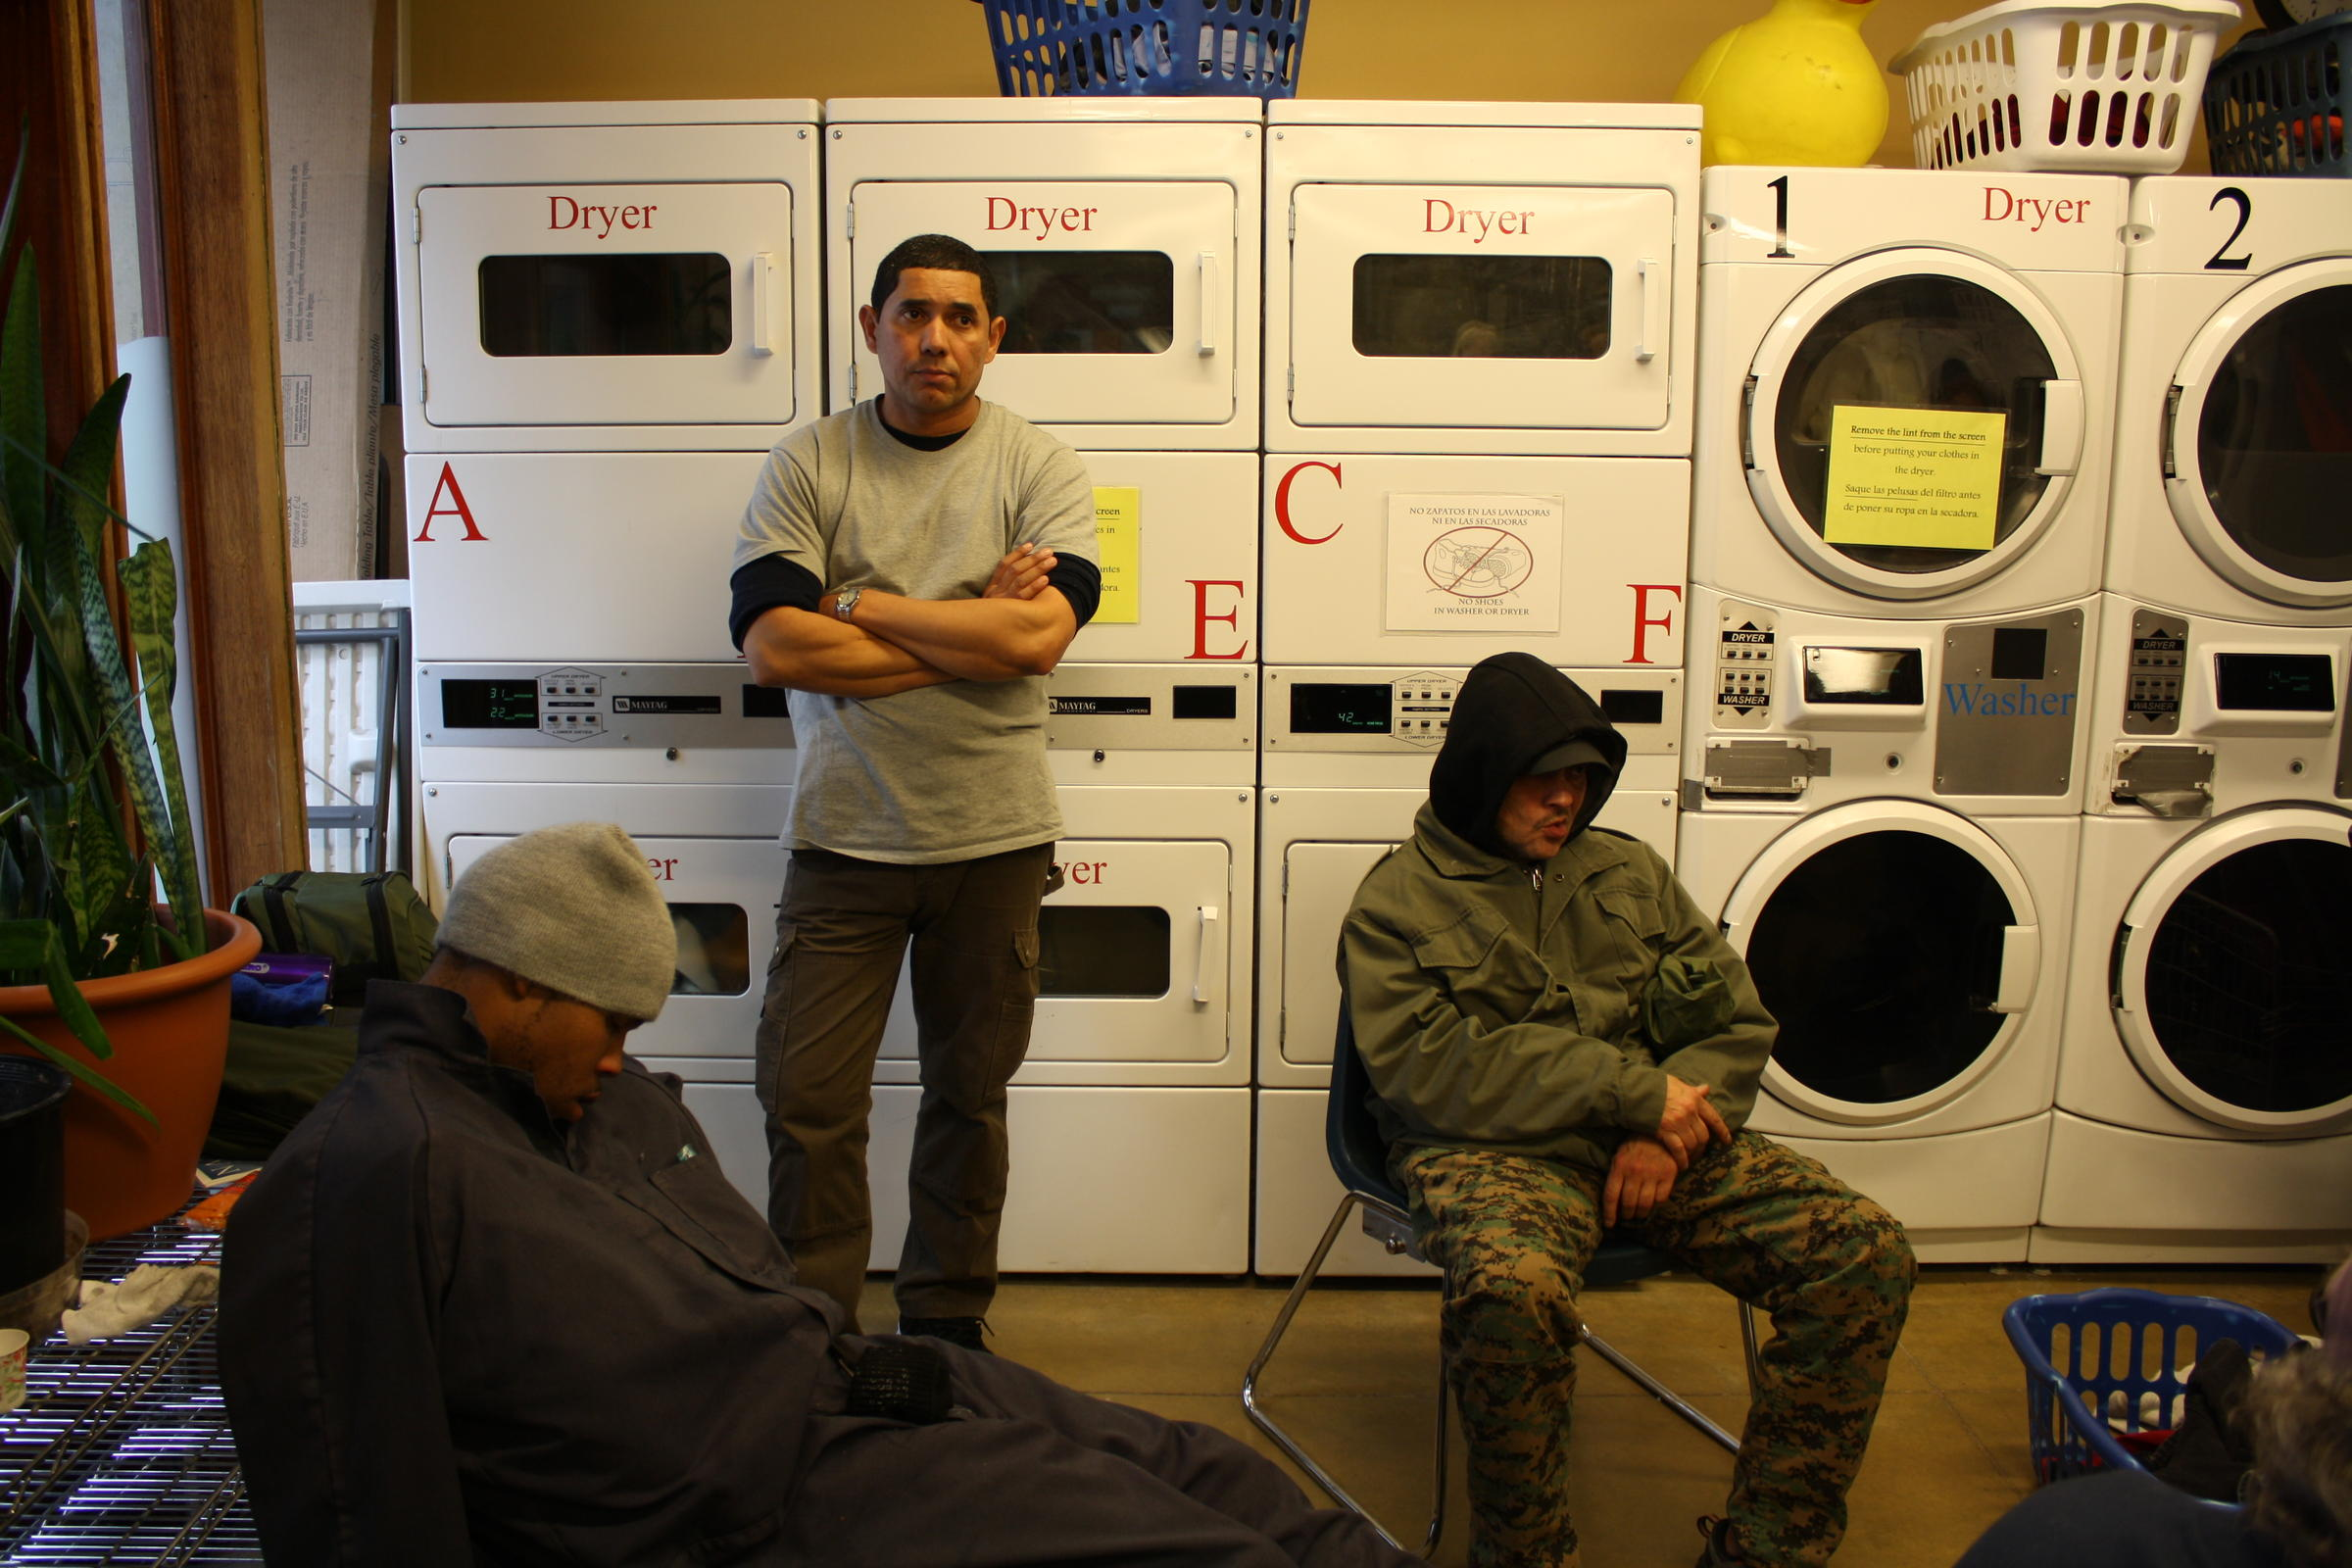 Laundry for the homeless 8